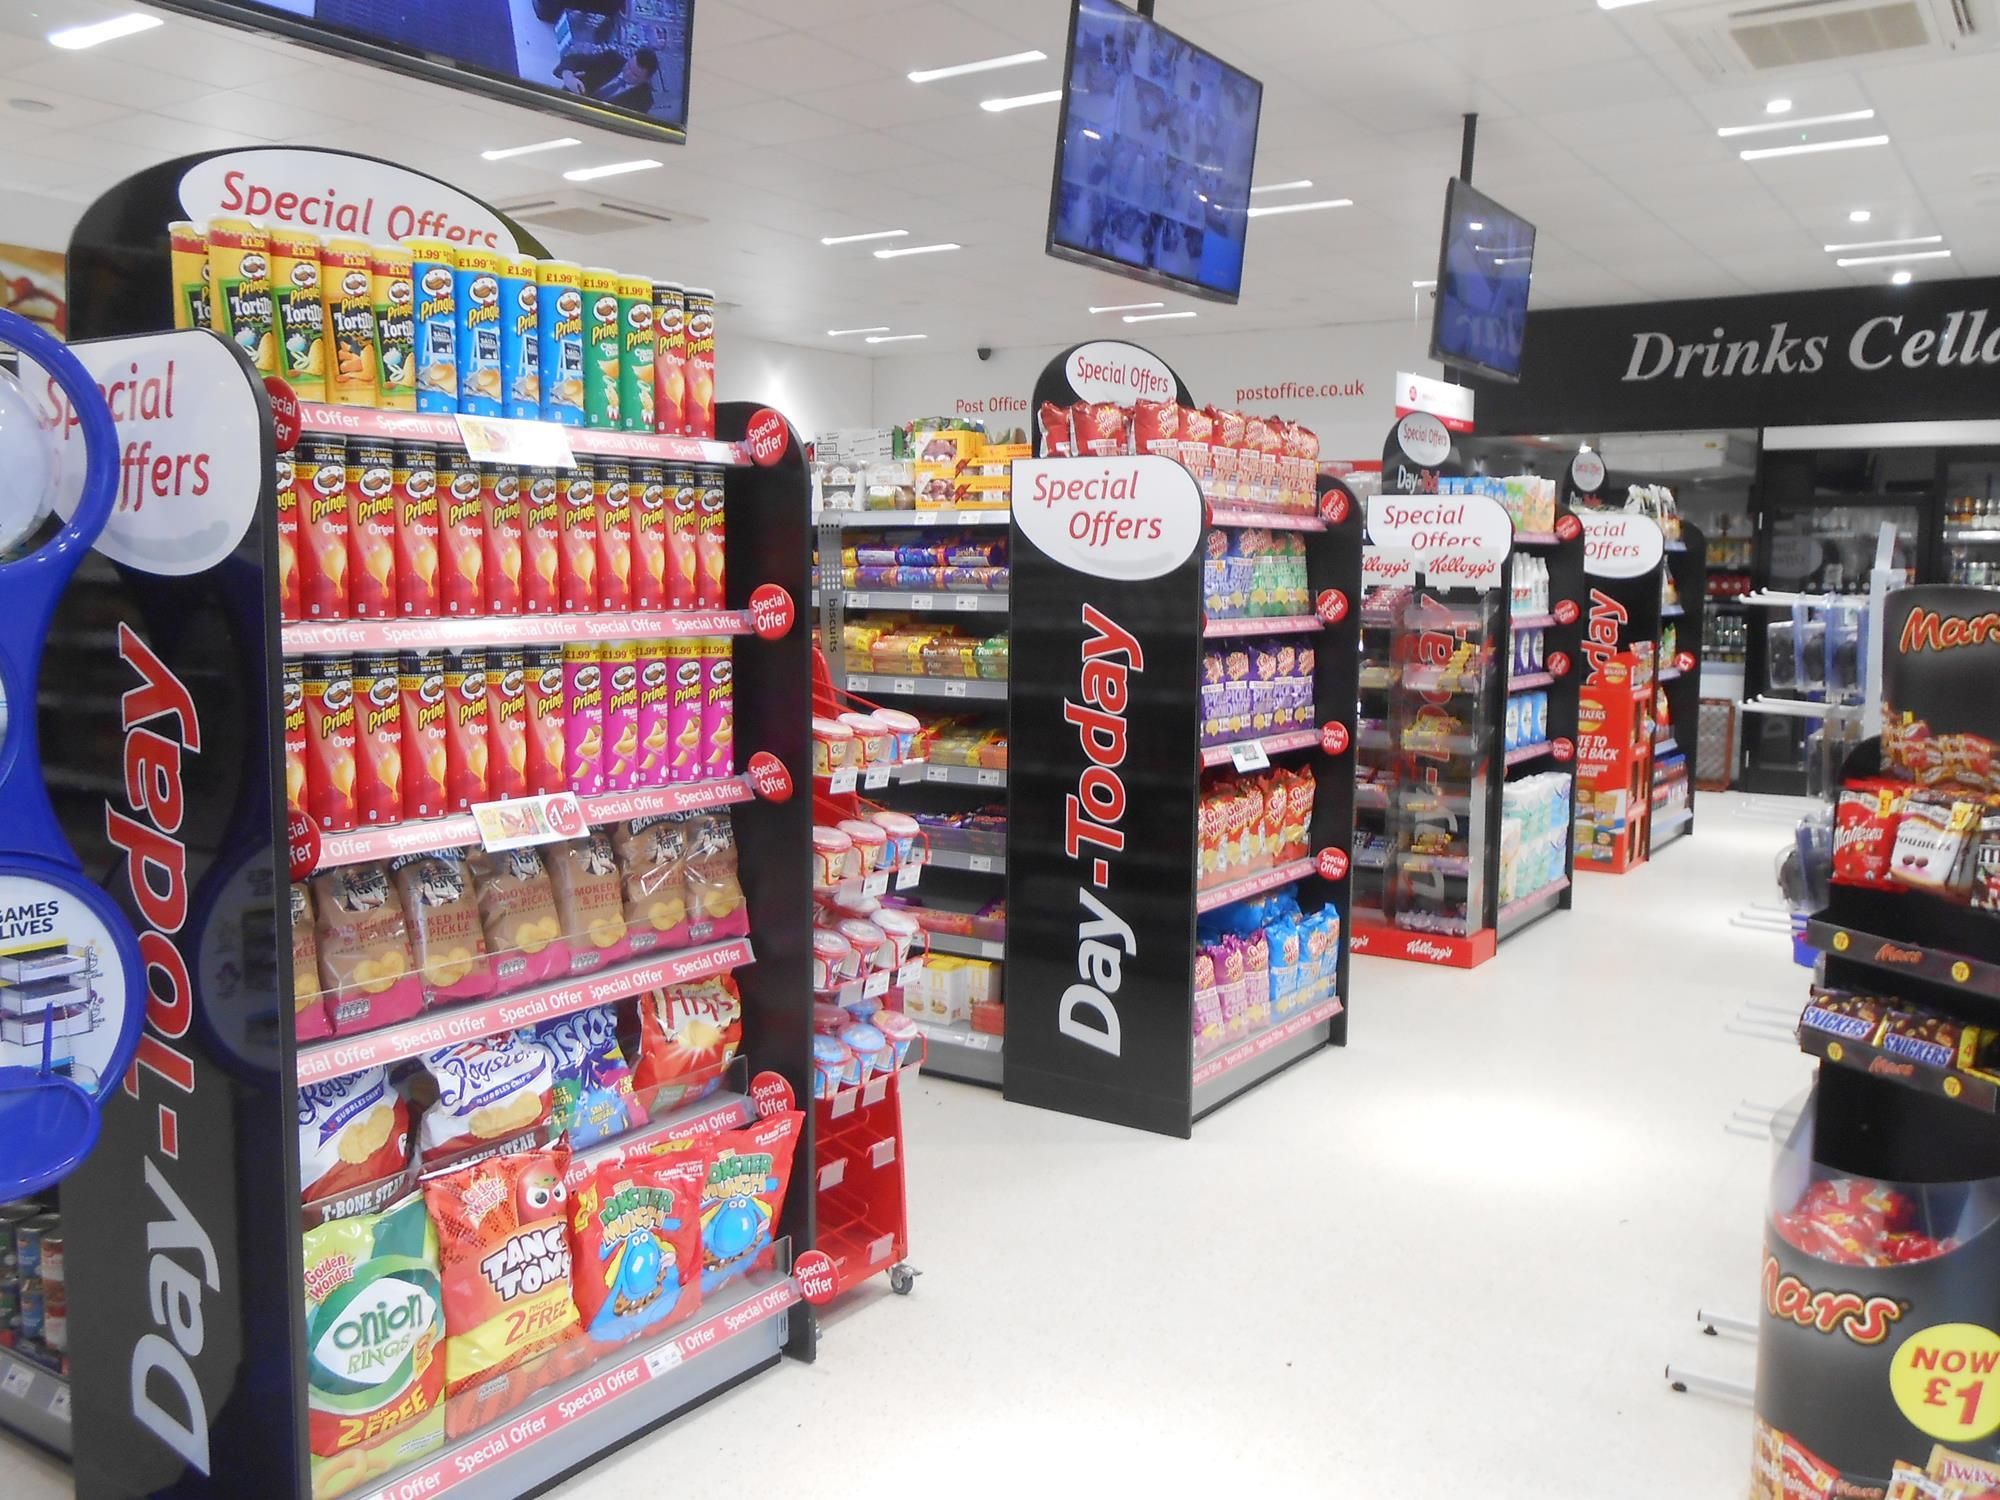 Re-merchandising has an important place | Features | Convenience Store